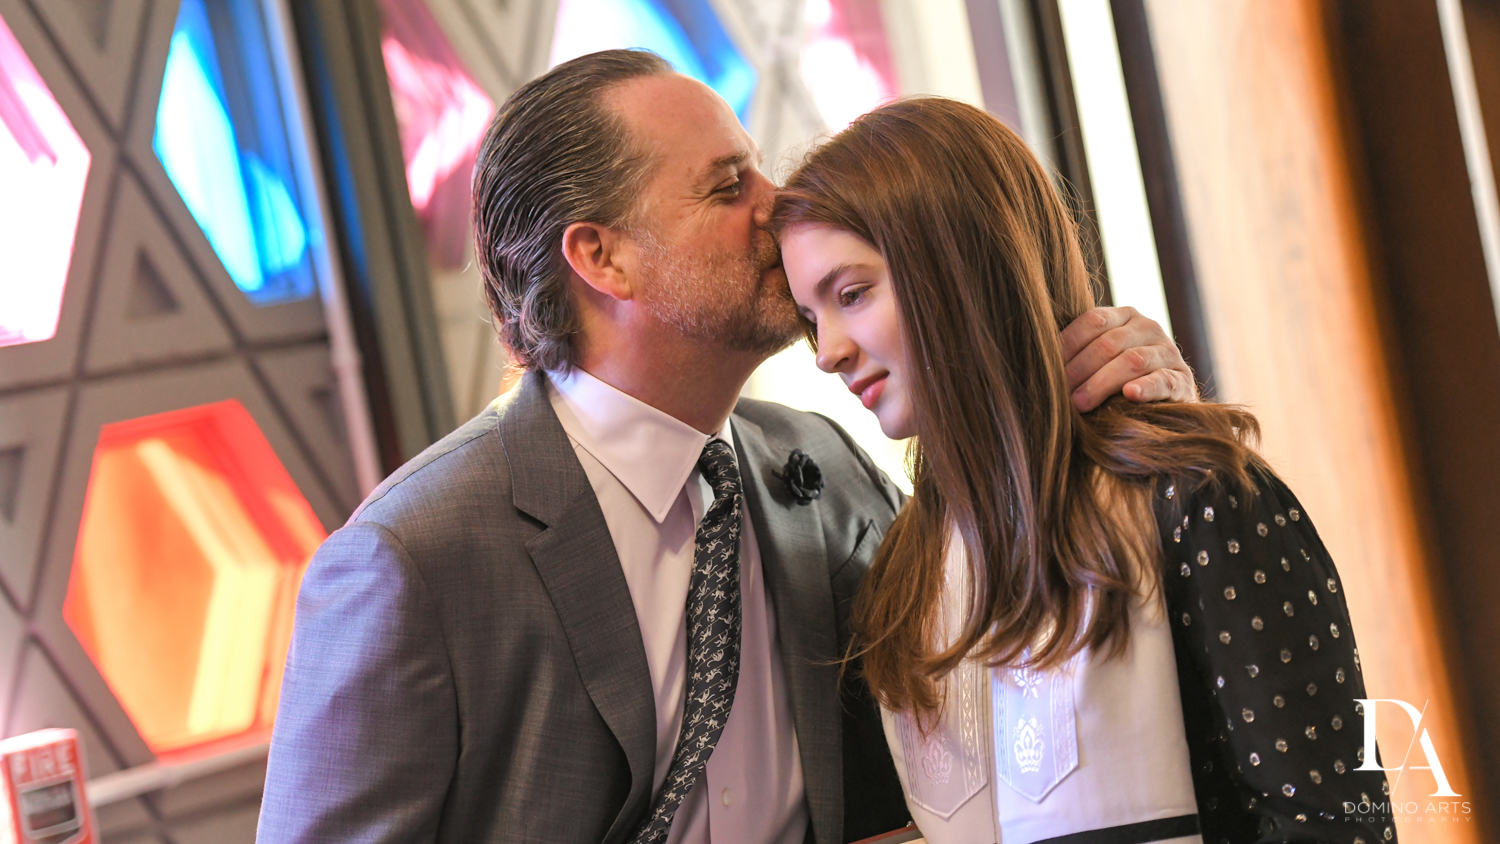 dad and daughter at Music Festival Bat Mitzvah at The Fillmore Miami Beach by Domino Arts Photography